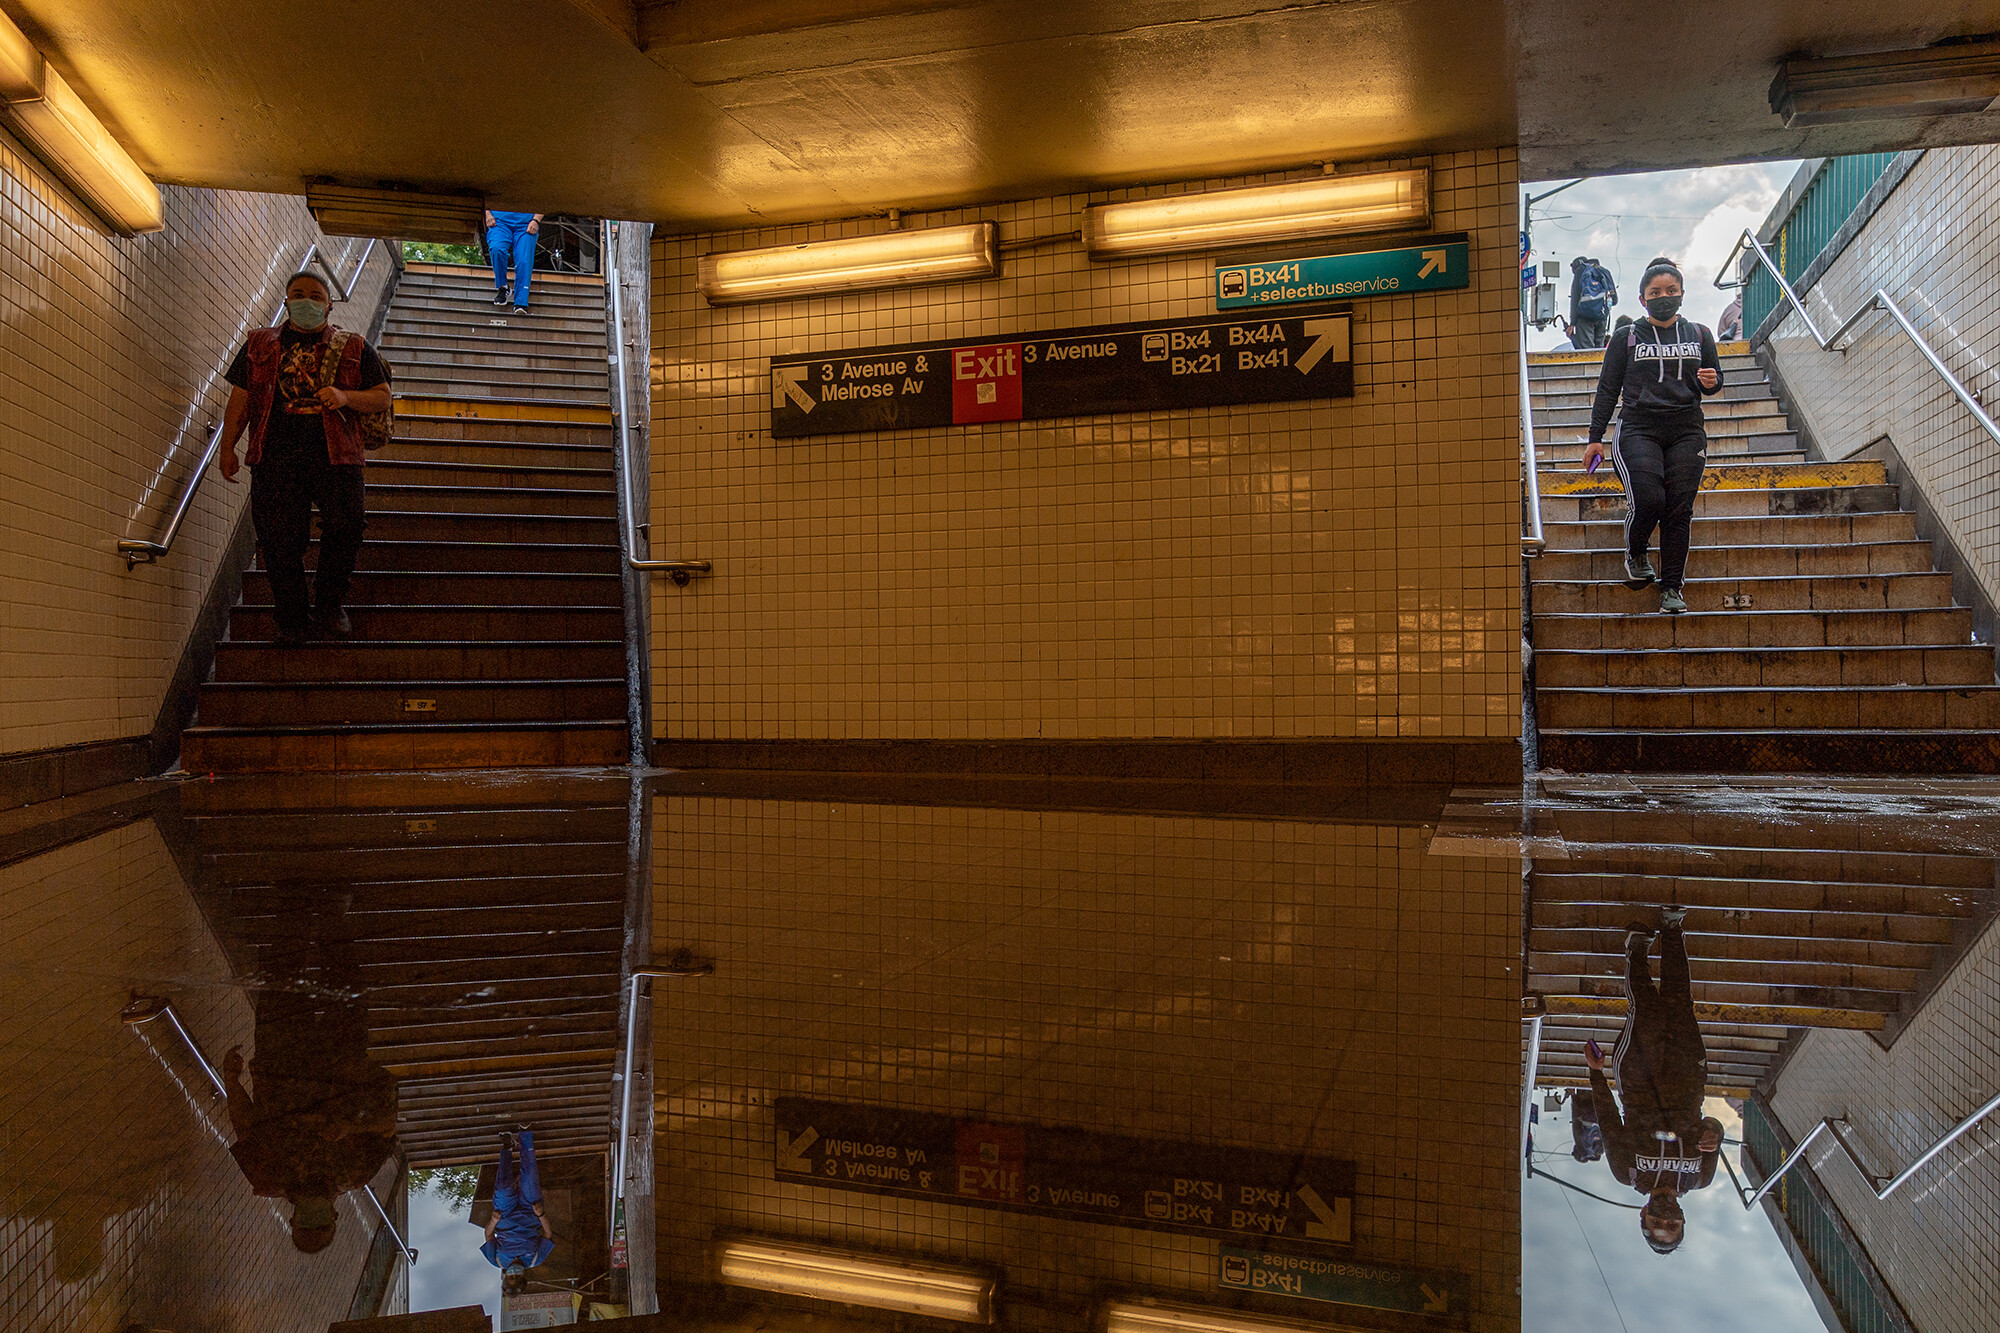 <i>David Dee Delgado/Getty Images</i><br/>Commuters walk into a flooded 3rd Avenue / 149th st subway station and disrupted service due to extremely heavy rainfall from the remnants of Hurricane Ida on September 2